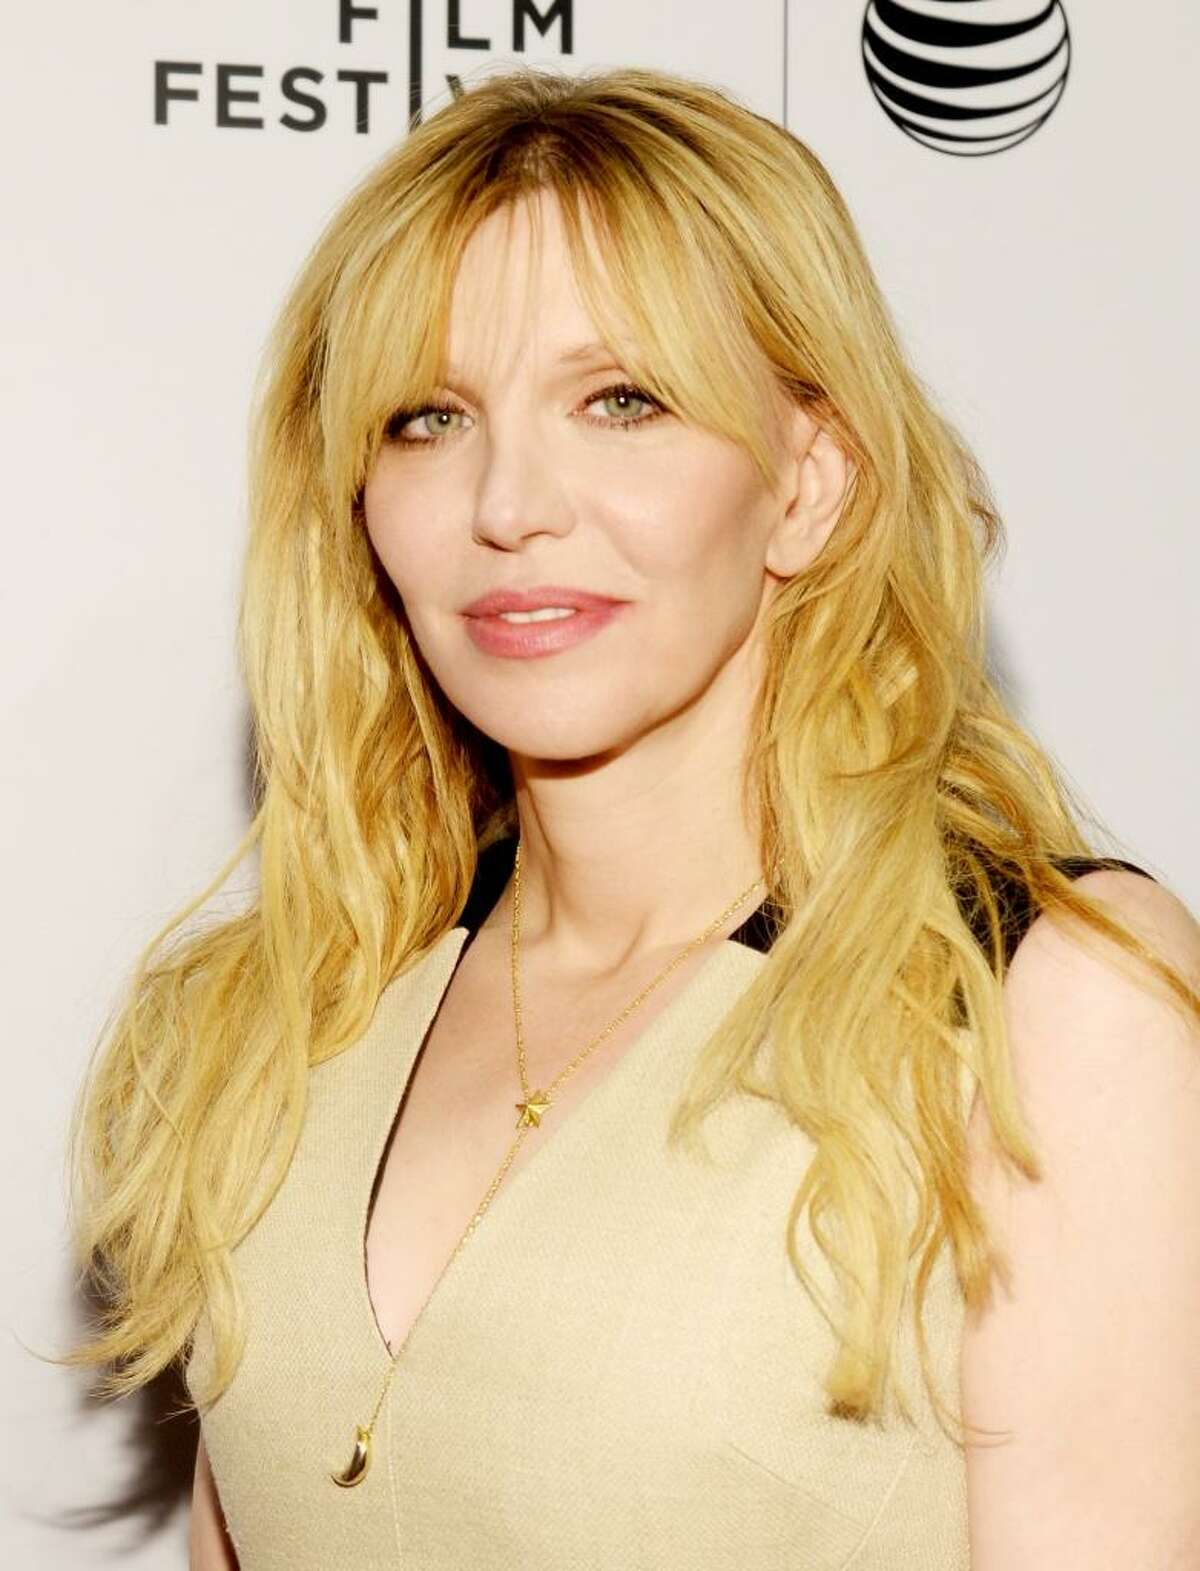 11 famous people living with Autism:Courtney Love The Hole frontwoman and widow of Kurt Cobain had a diagnosis of autism at age 9, her biographer says.